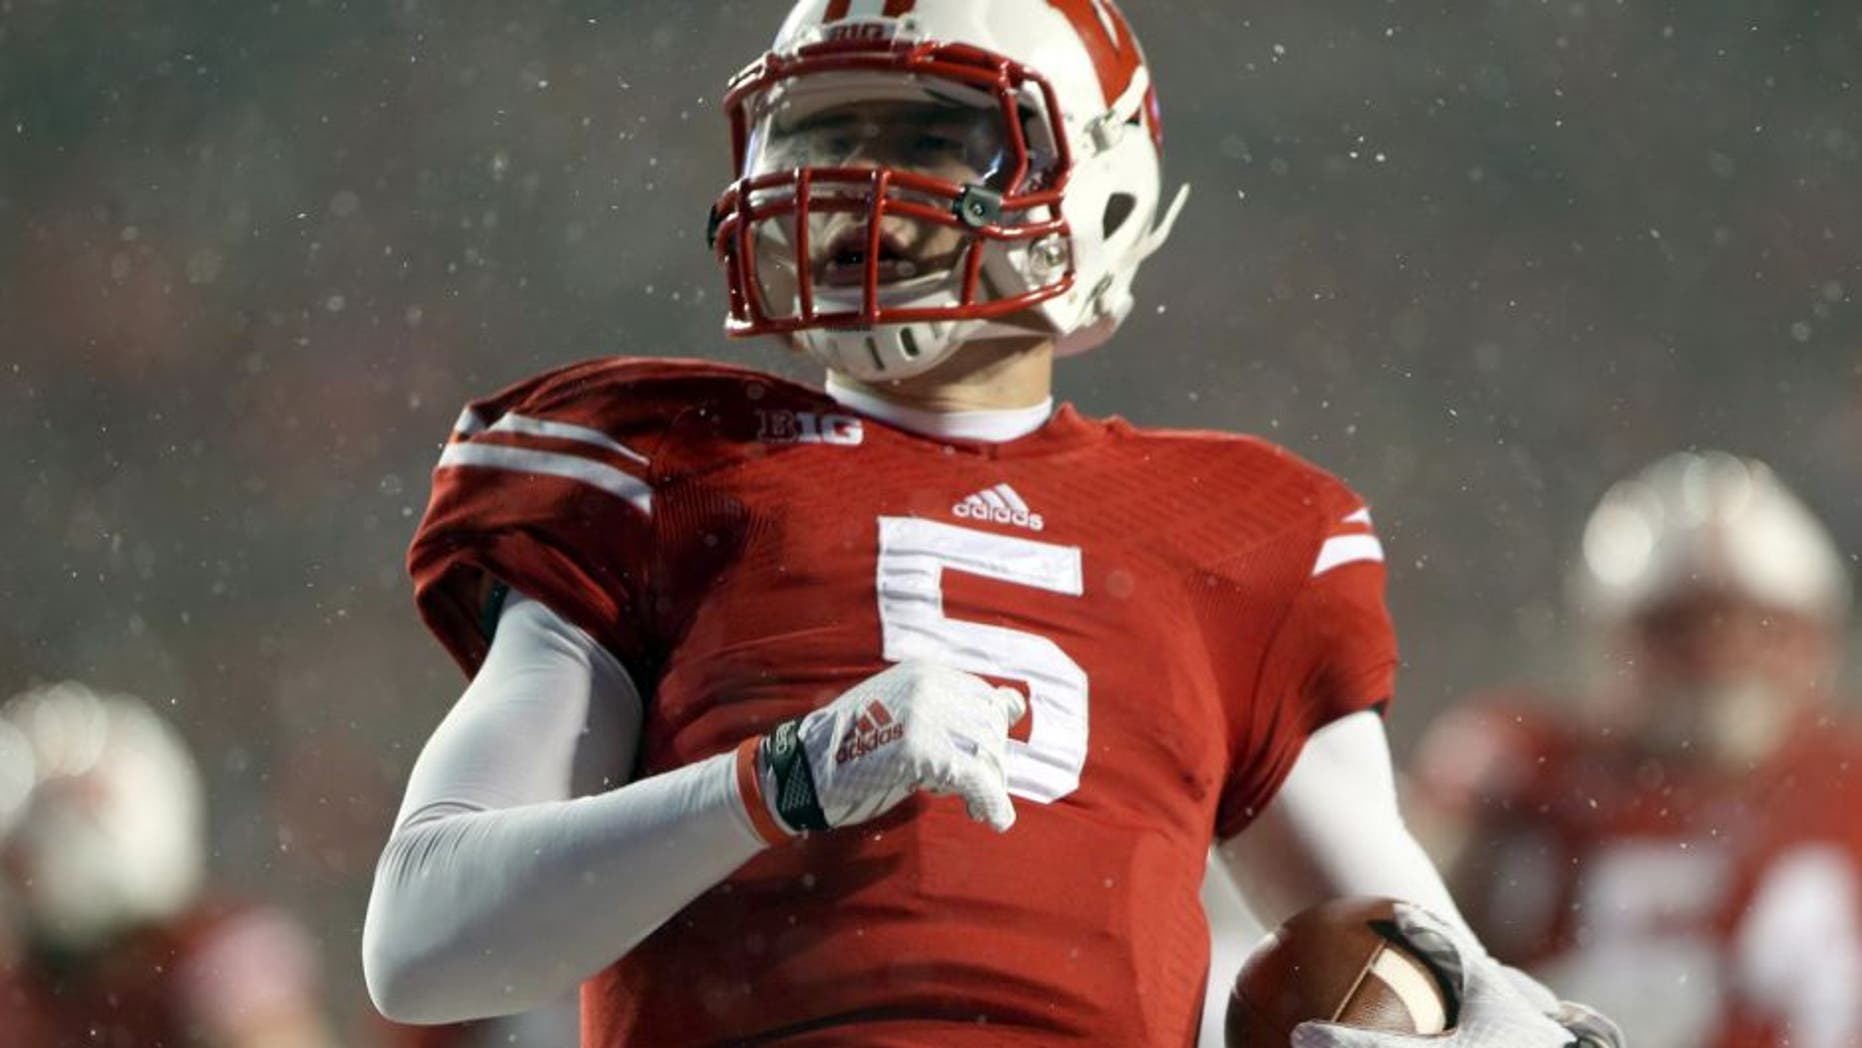 Nov 15, 2014; Madison, WI, USA; Wisconsin Badgers quarterback Tanner McEvoy (5) scores a touchdown during the game with the Nebraska Cornhuskers at Camp Randall Stadium. Wisconsin defeated Nebraska 59-24. Mandatory Credit: Mary Langenfeld-USA TODAY Sports